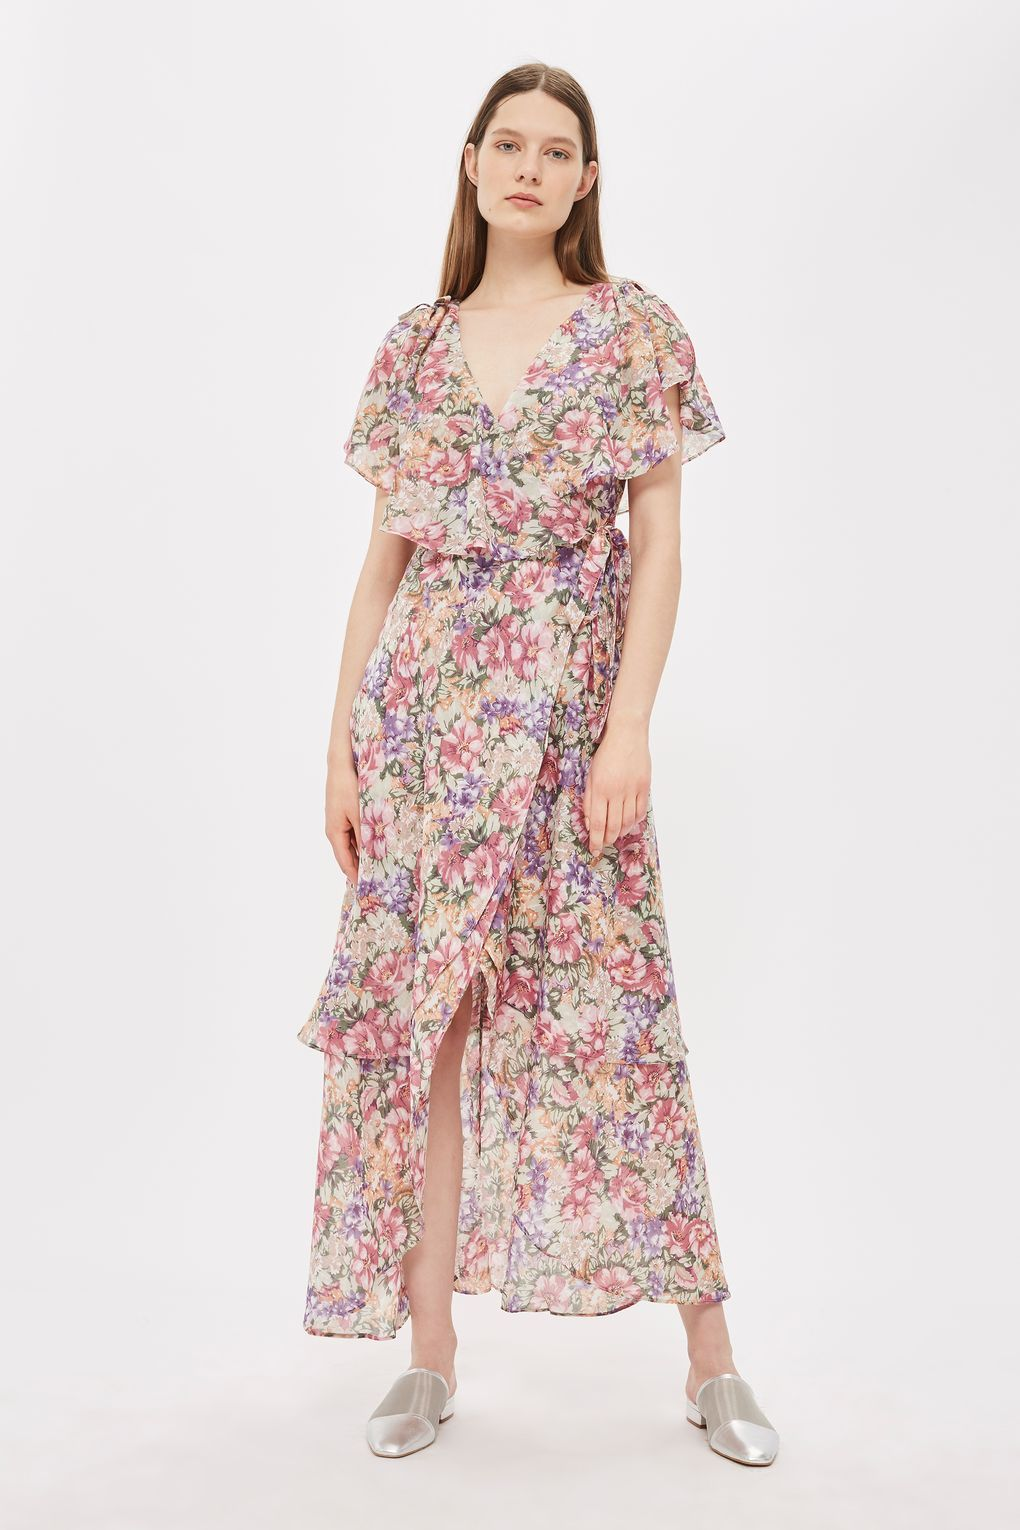 1f8b5fa80a4 You can instantly elevate your spring look to brand new heights with this  garden floral print maxi dress. In a flattering wrap design